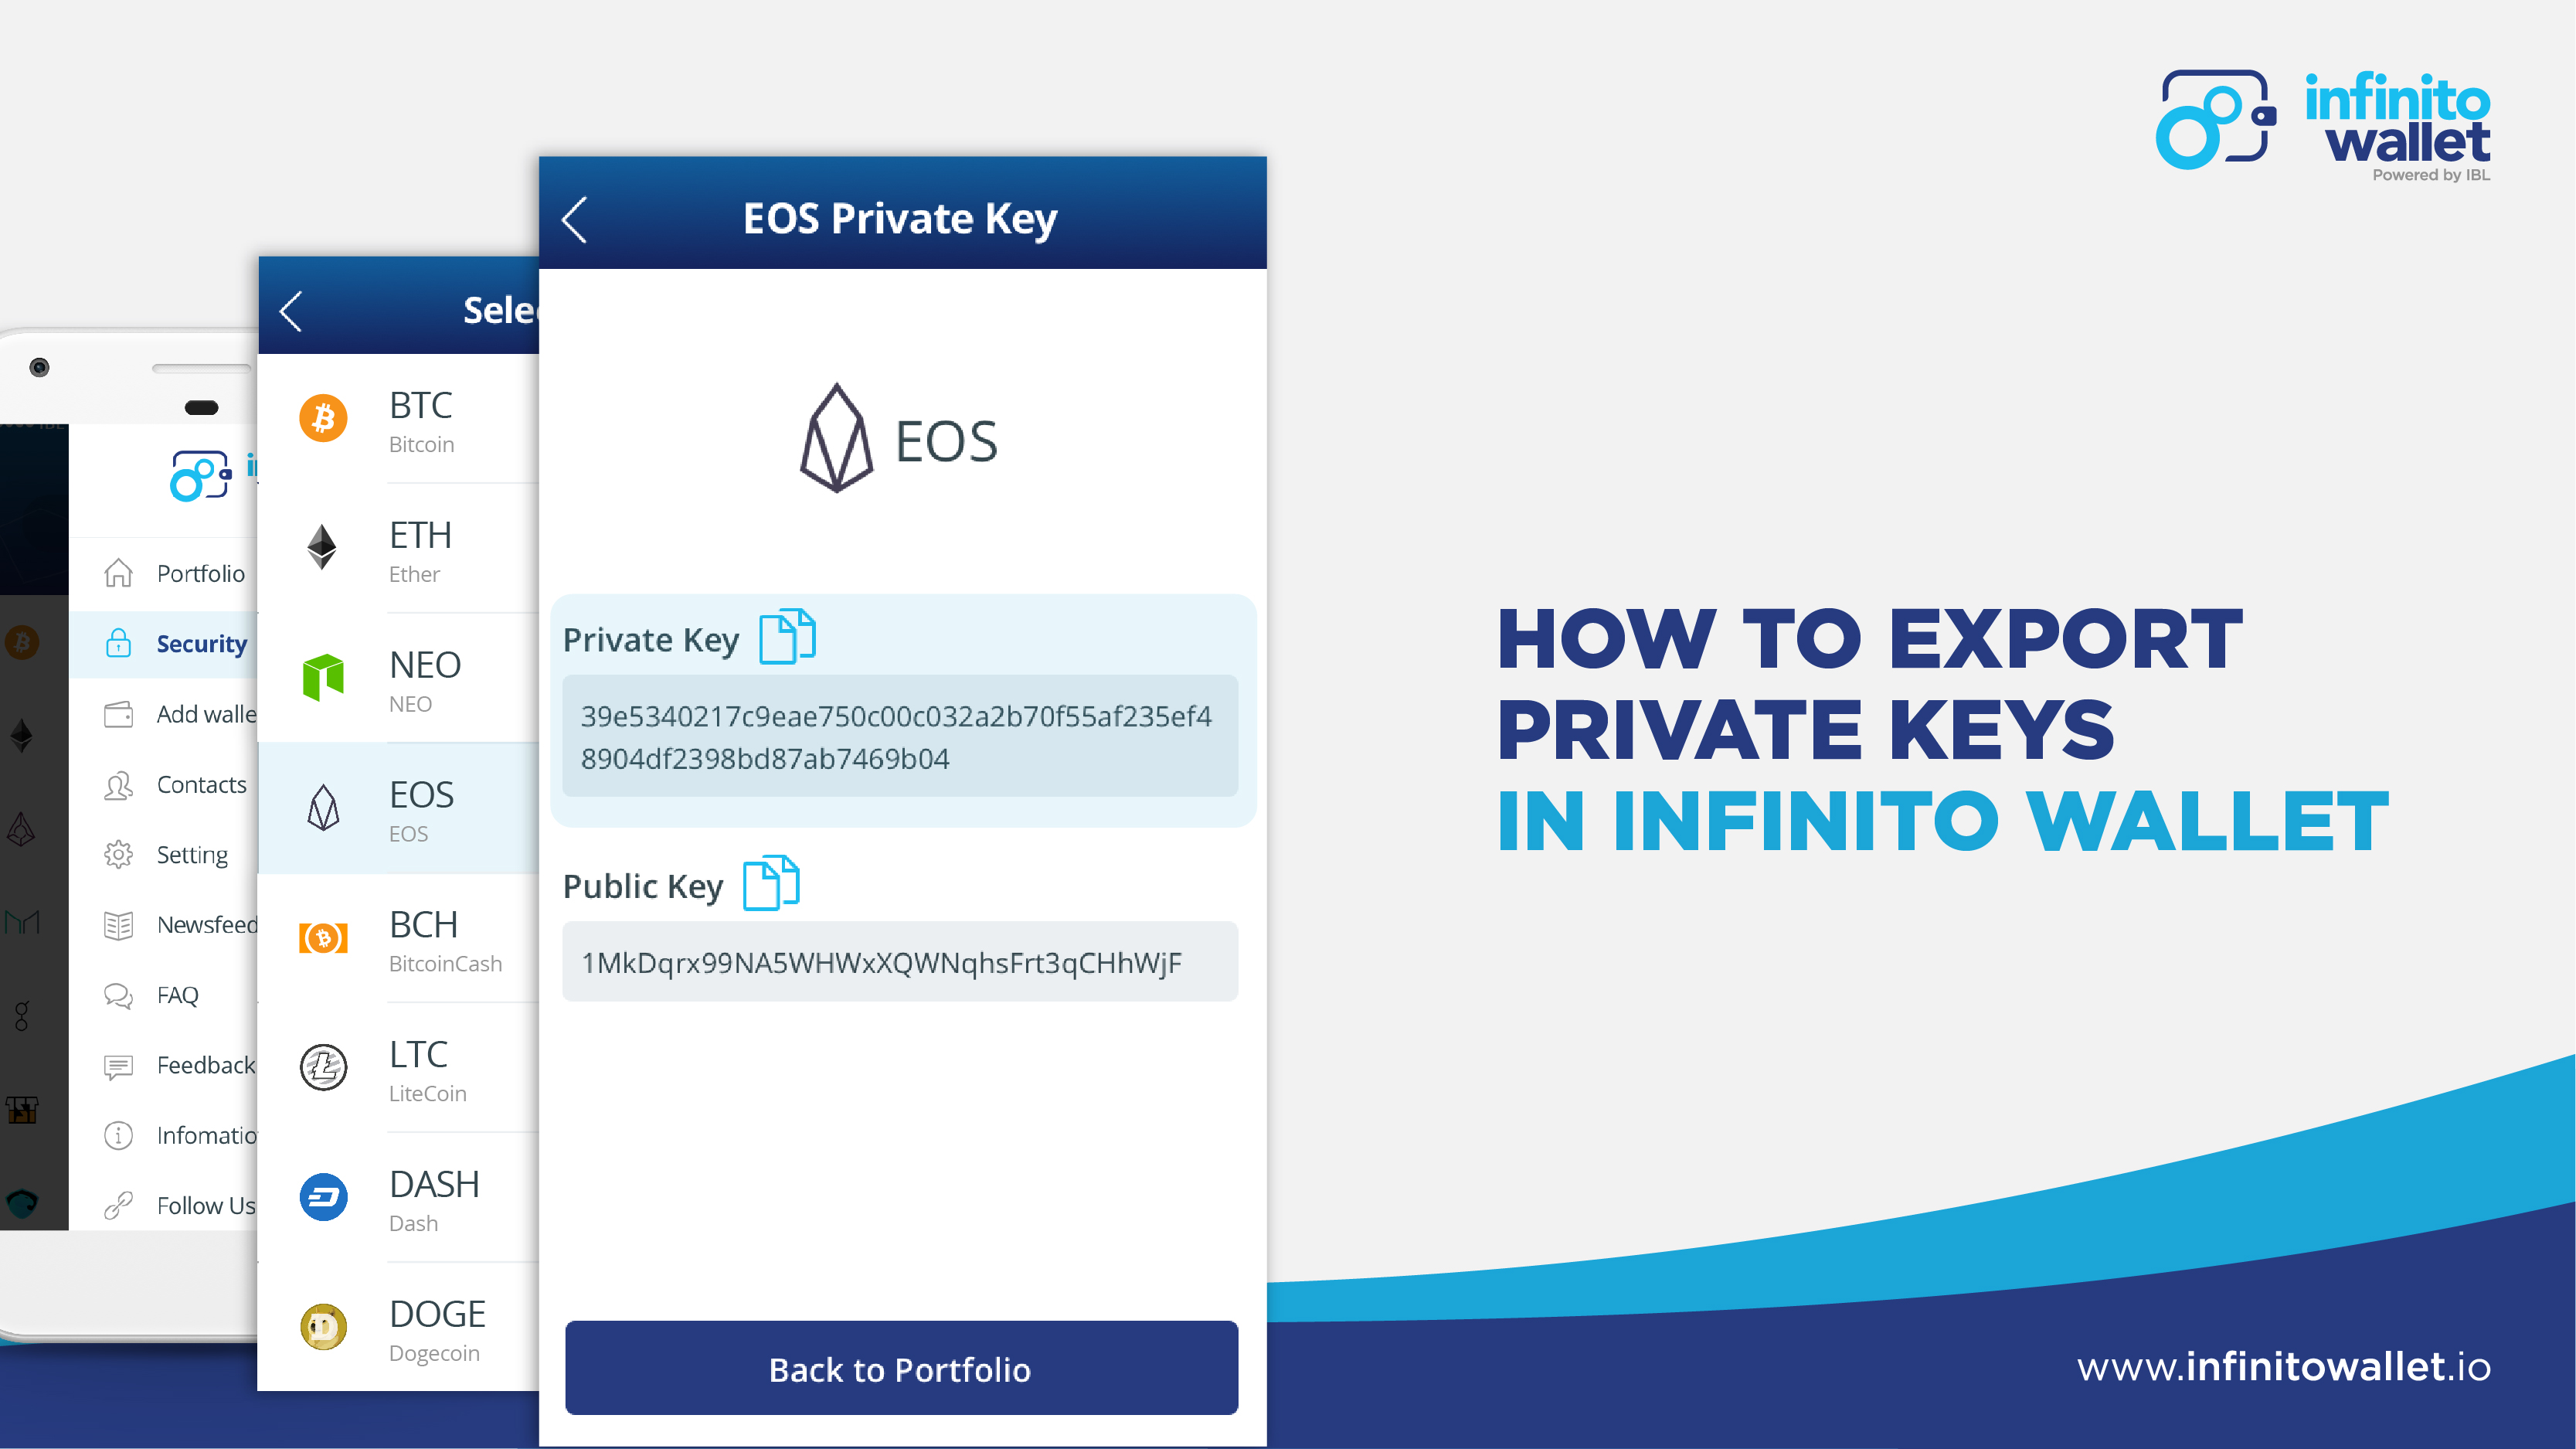 The Wait Is Over - You Can Now View and Export Your Private Keys